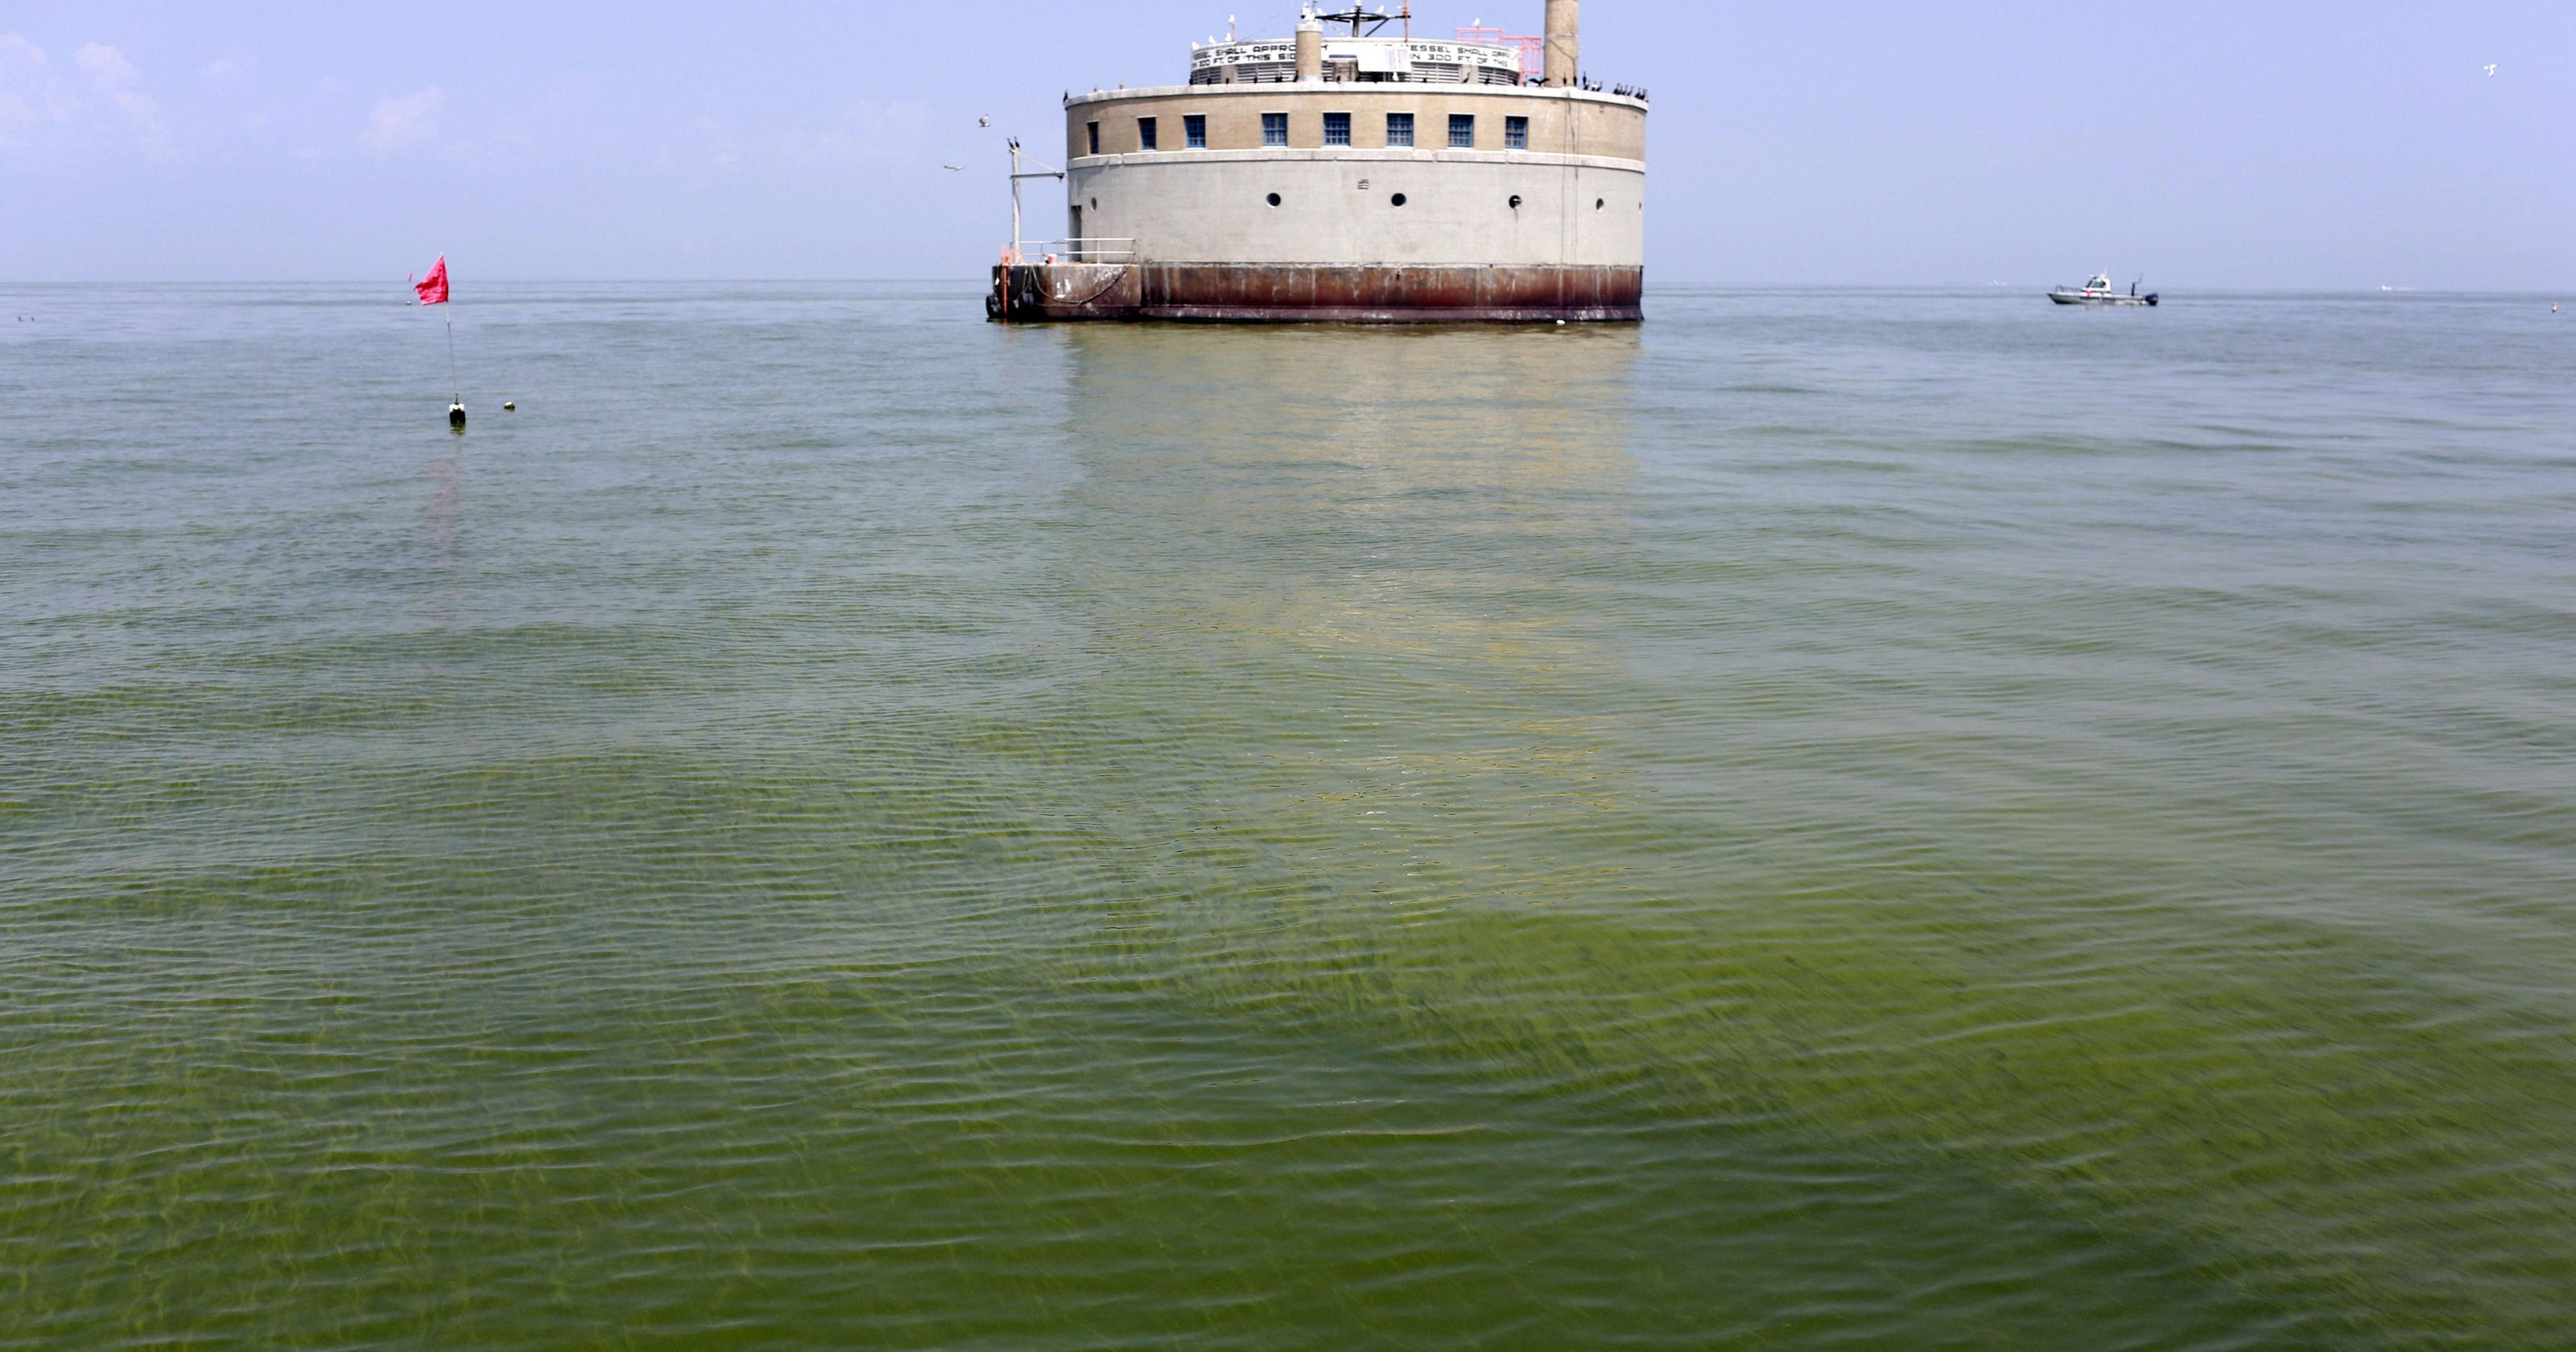 The Epa Is Closing Office That Helps >> Epa Denies Great Lakes Office Closing